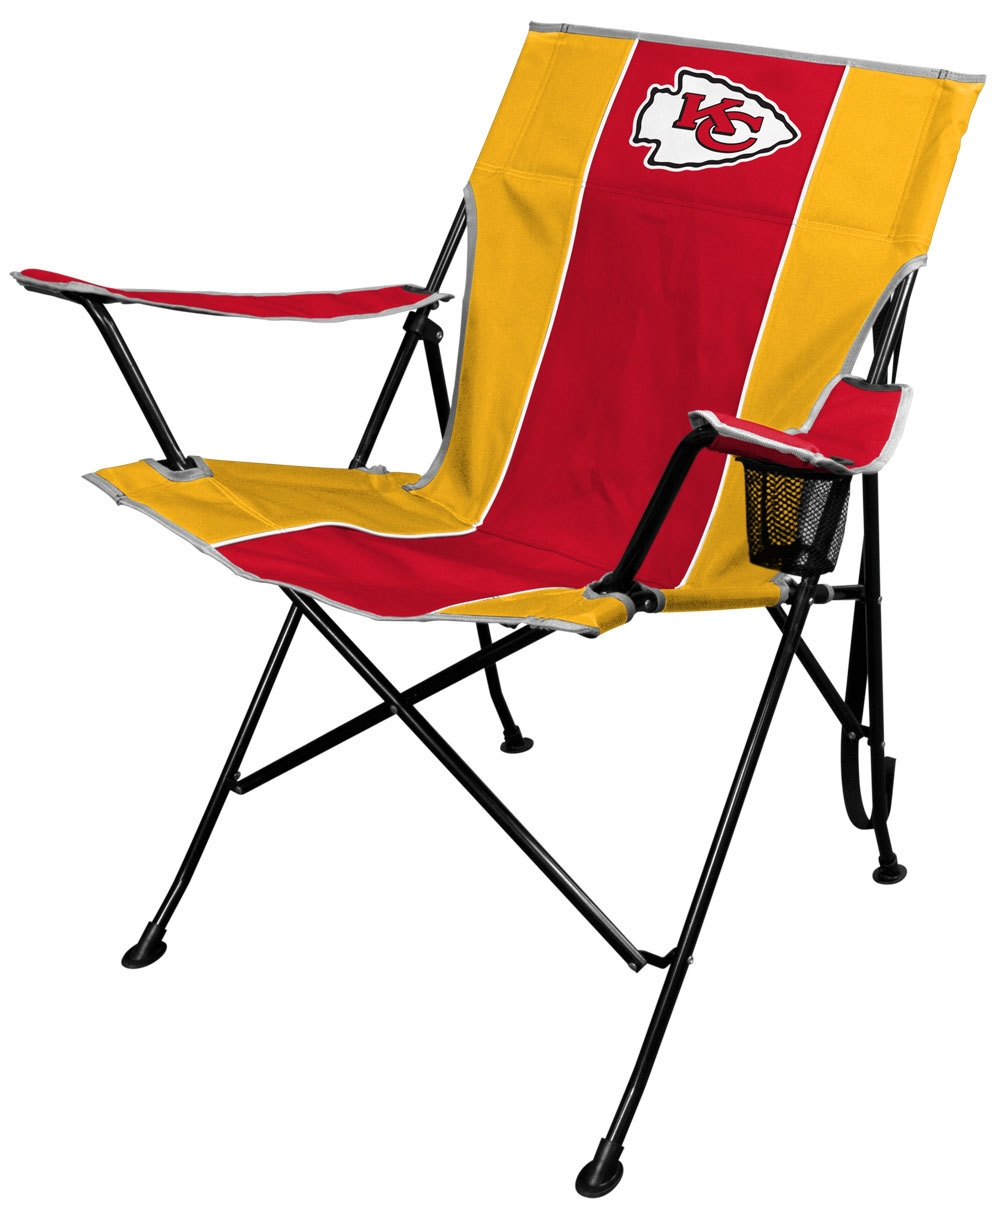 Facilities Management Bar Stool Set Table Chair Round Square Pub Tables Round Square Table Top Pub Tables - 1509989313 - Kansas City Chiefs Chair Tailgate 1509989313